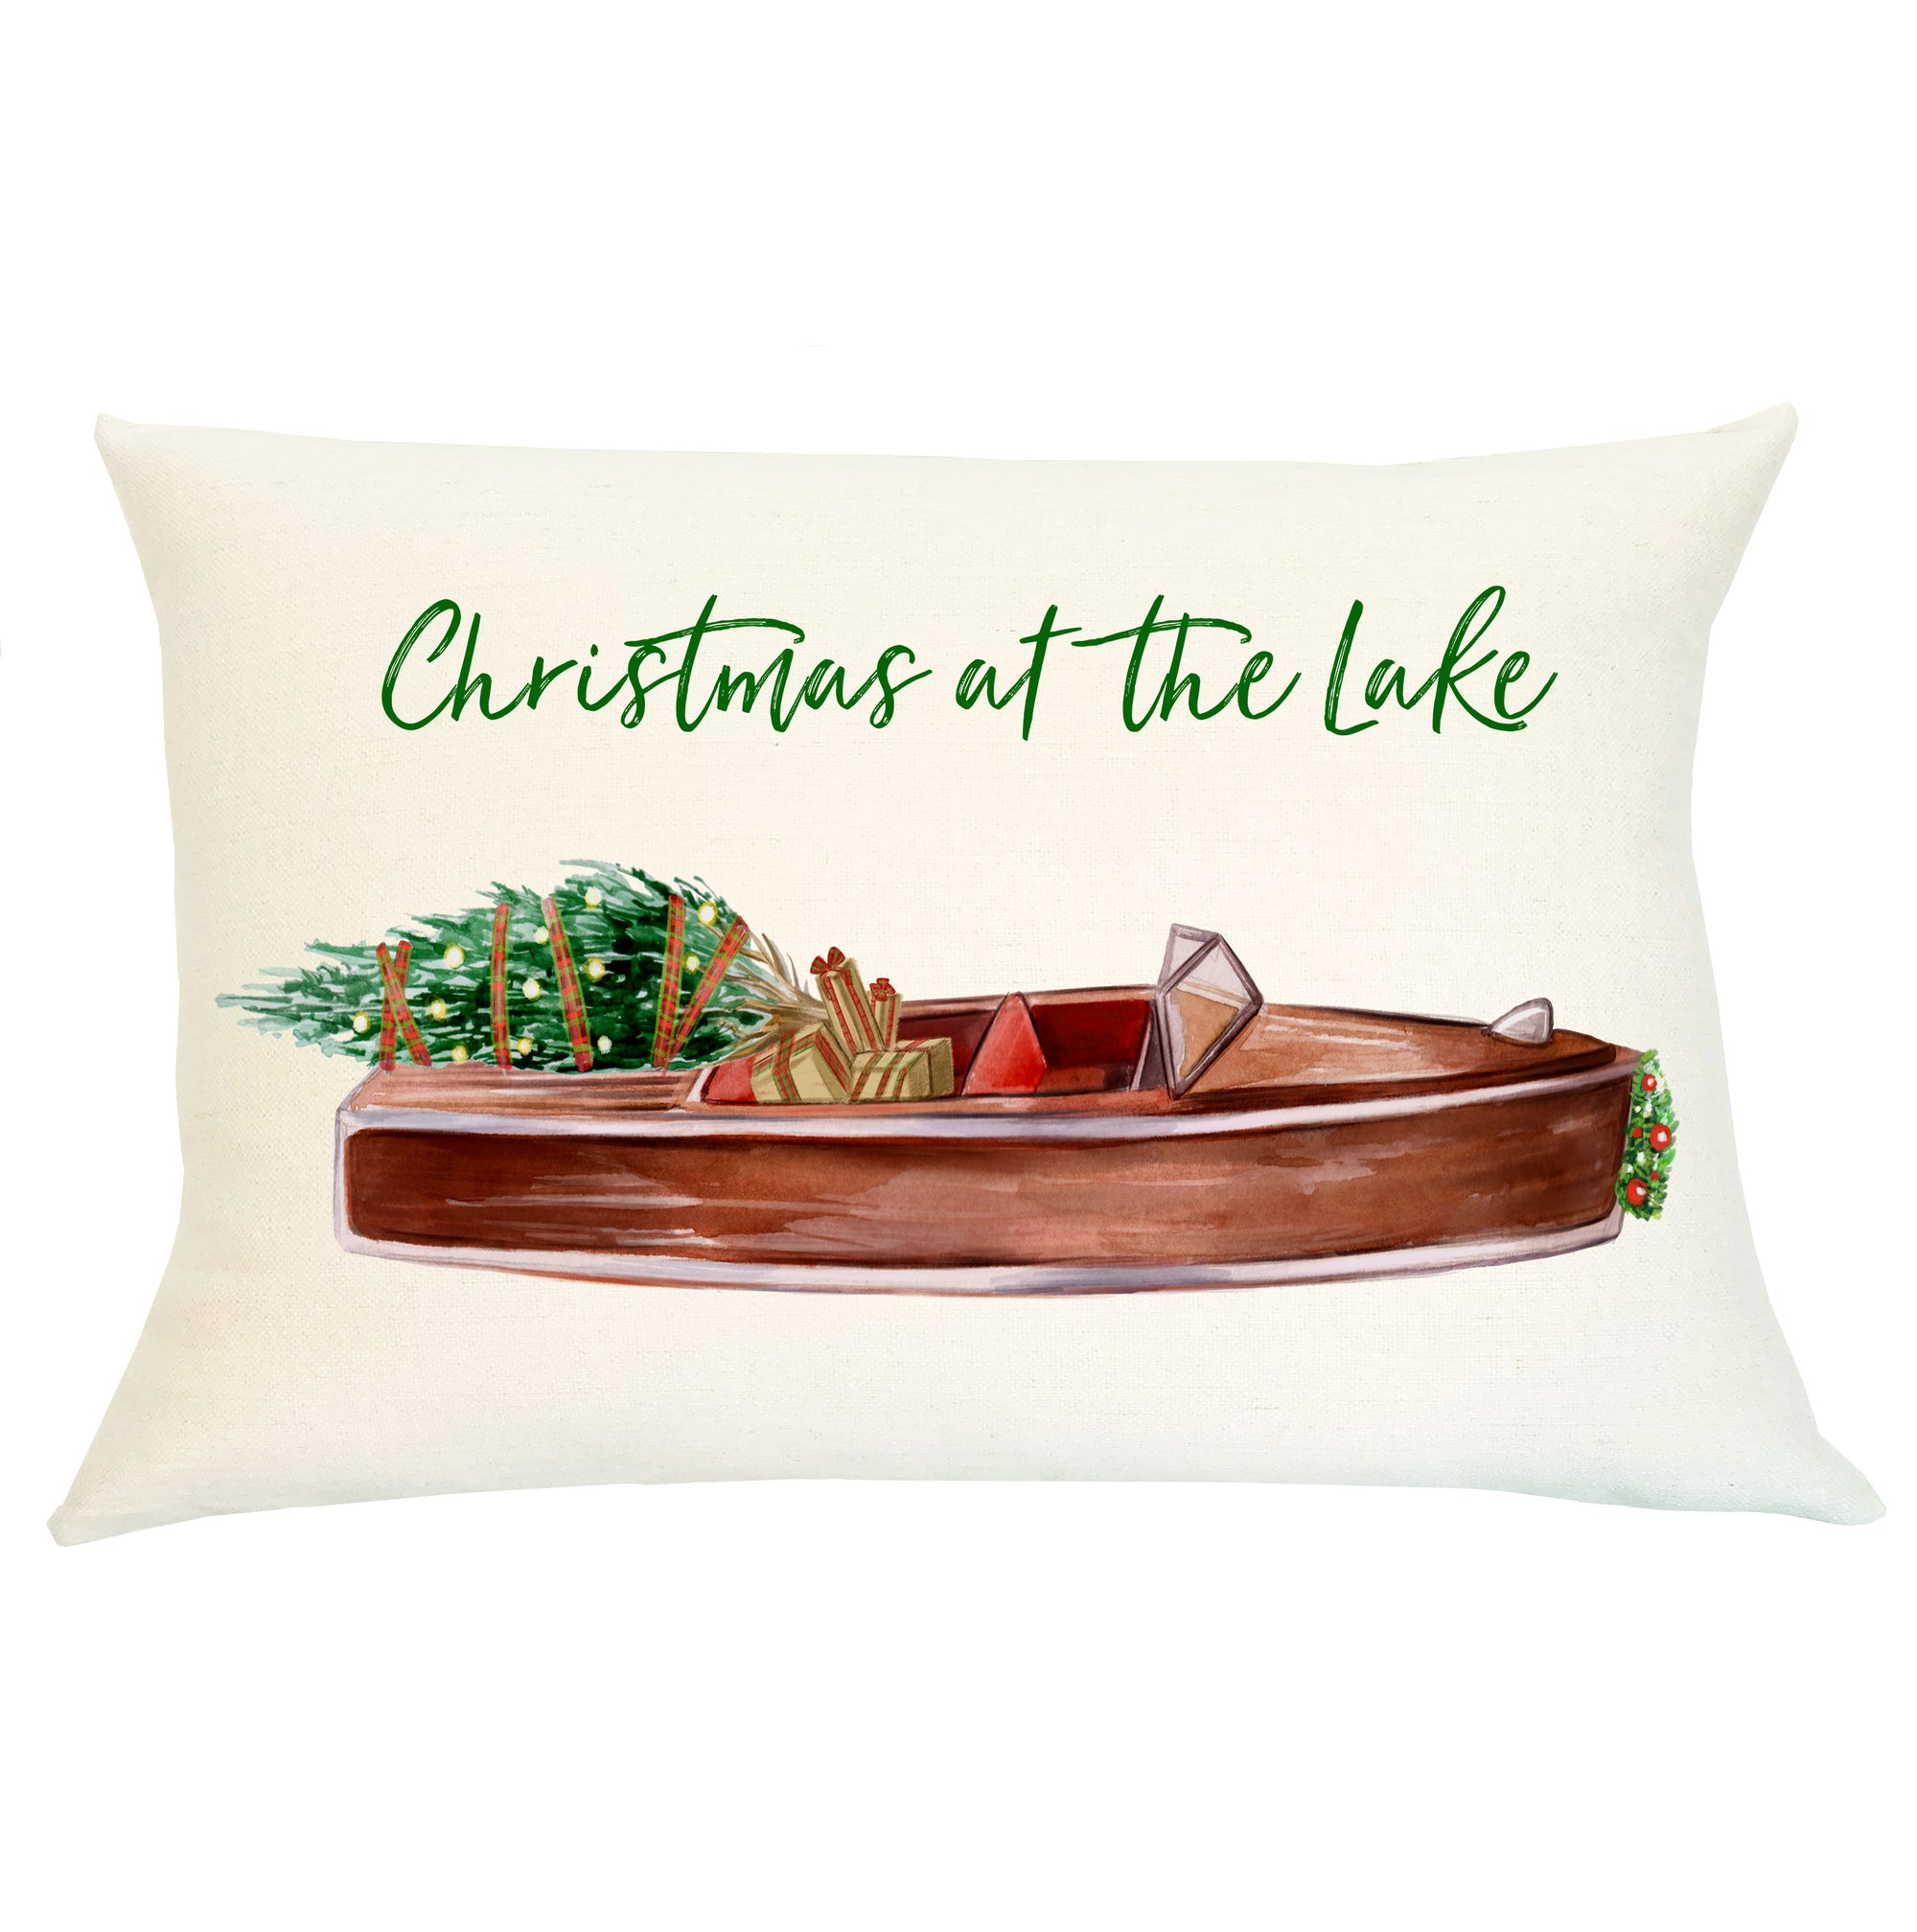 Pillow Lumbar - Christmas at the Lake - Insert Included